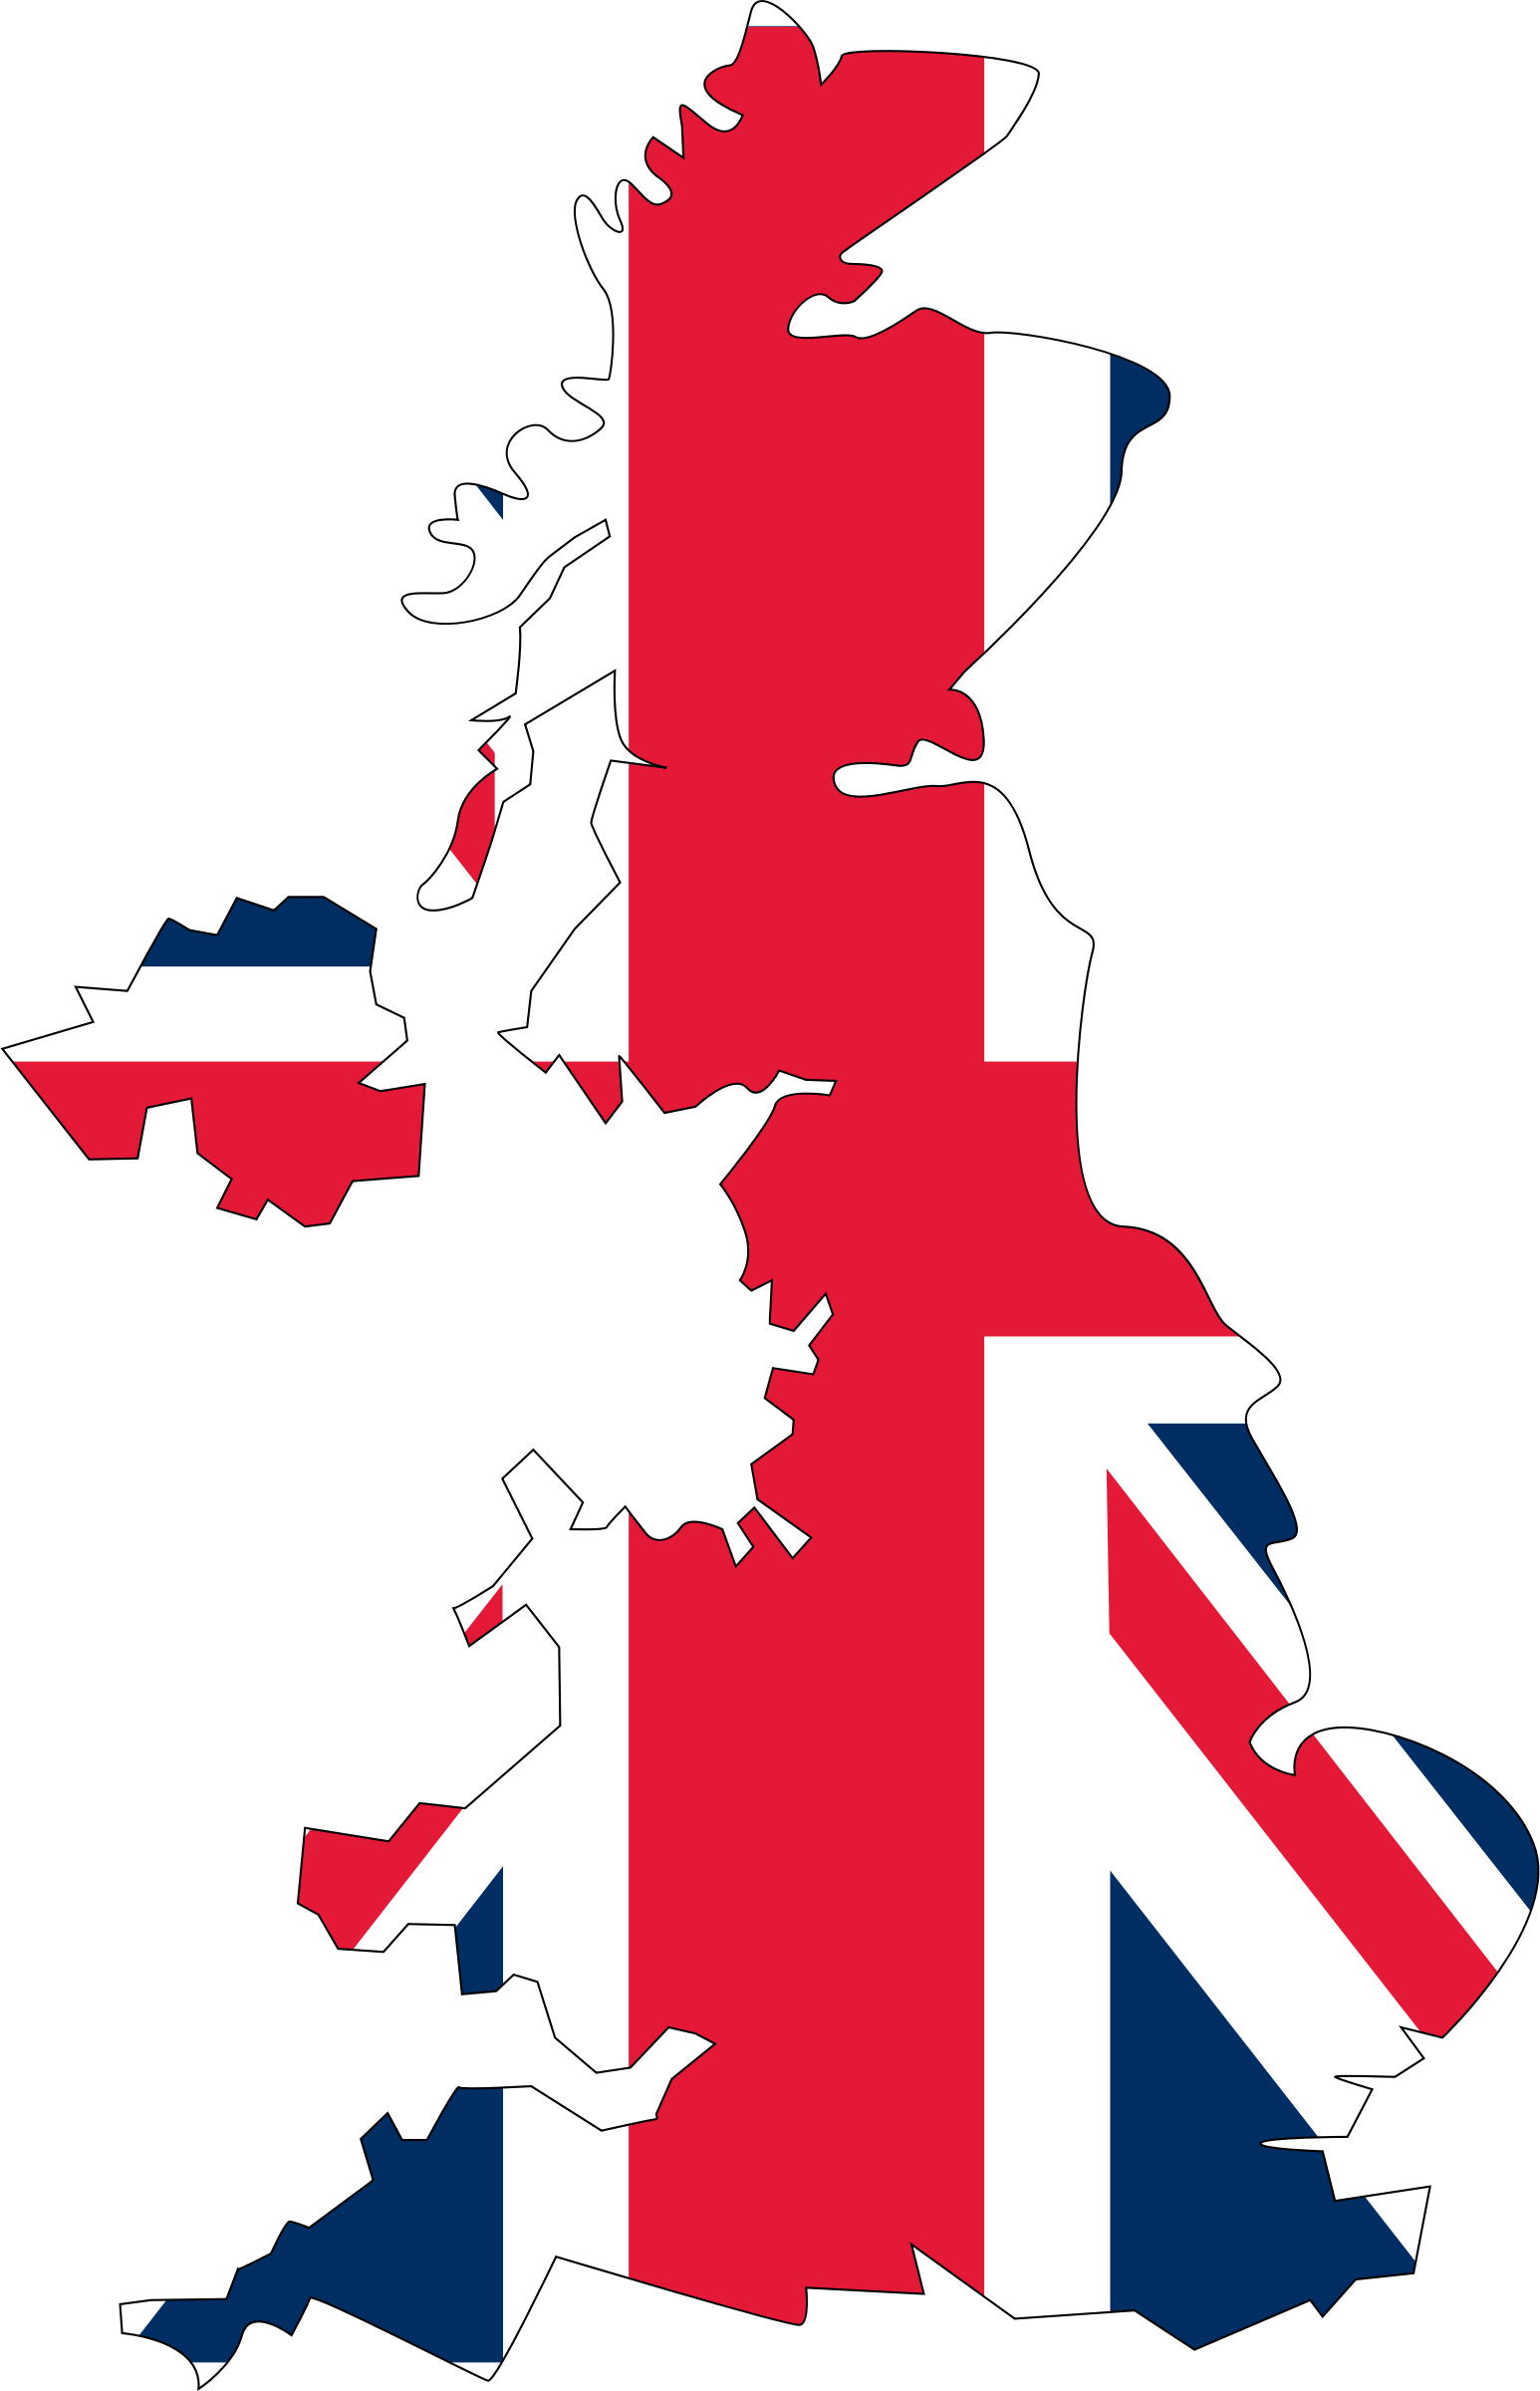 The uk clipart map.